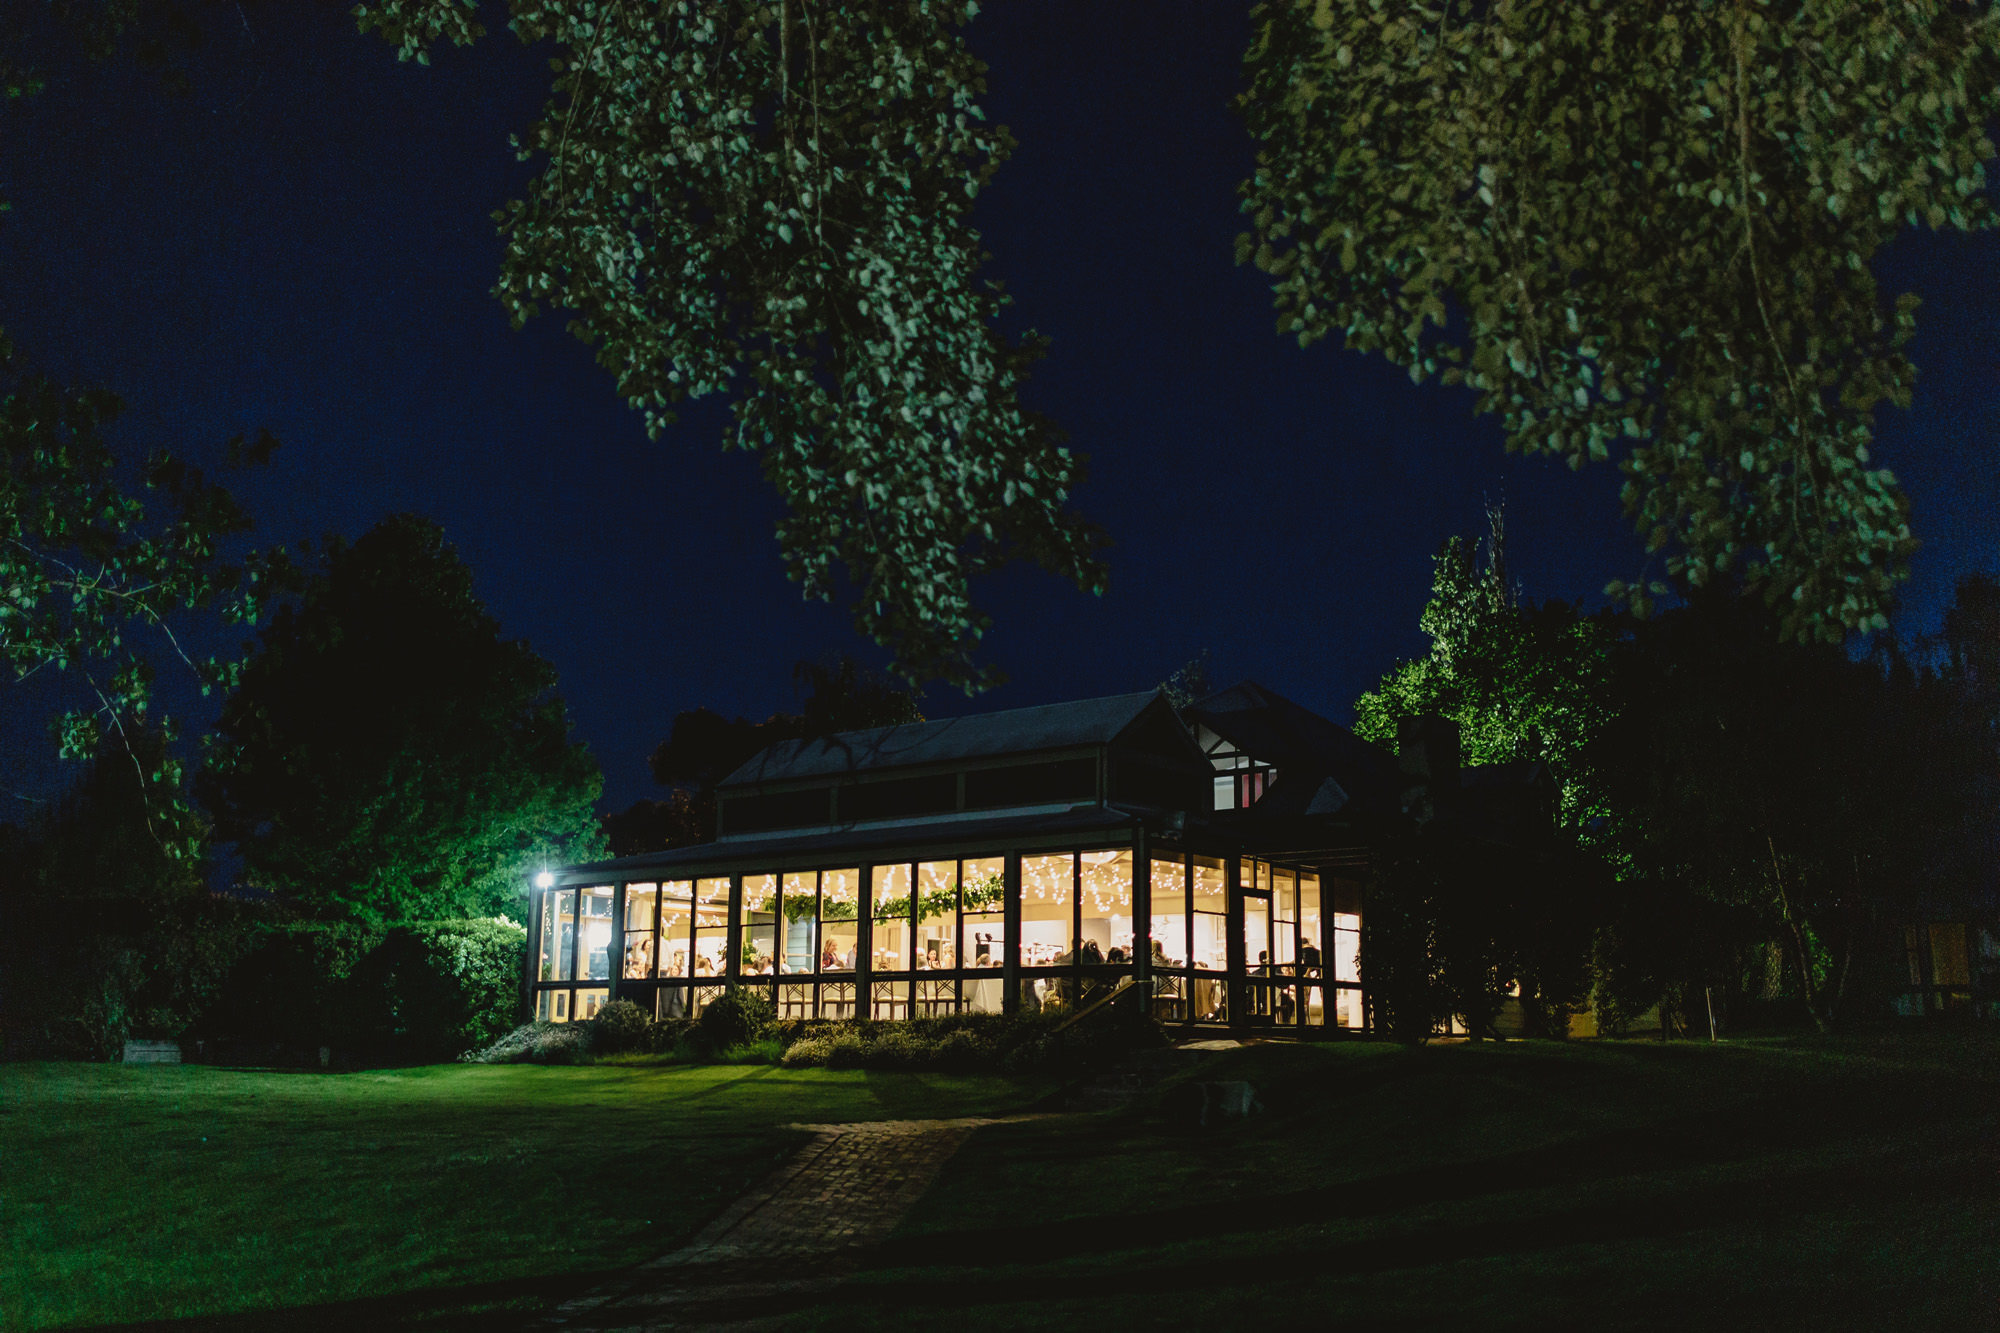 briars country lodge wedding reception venue at night.